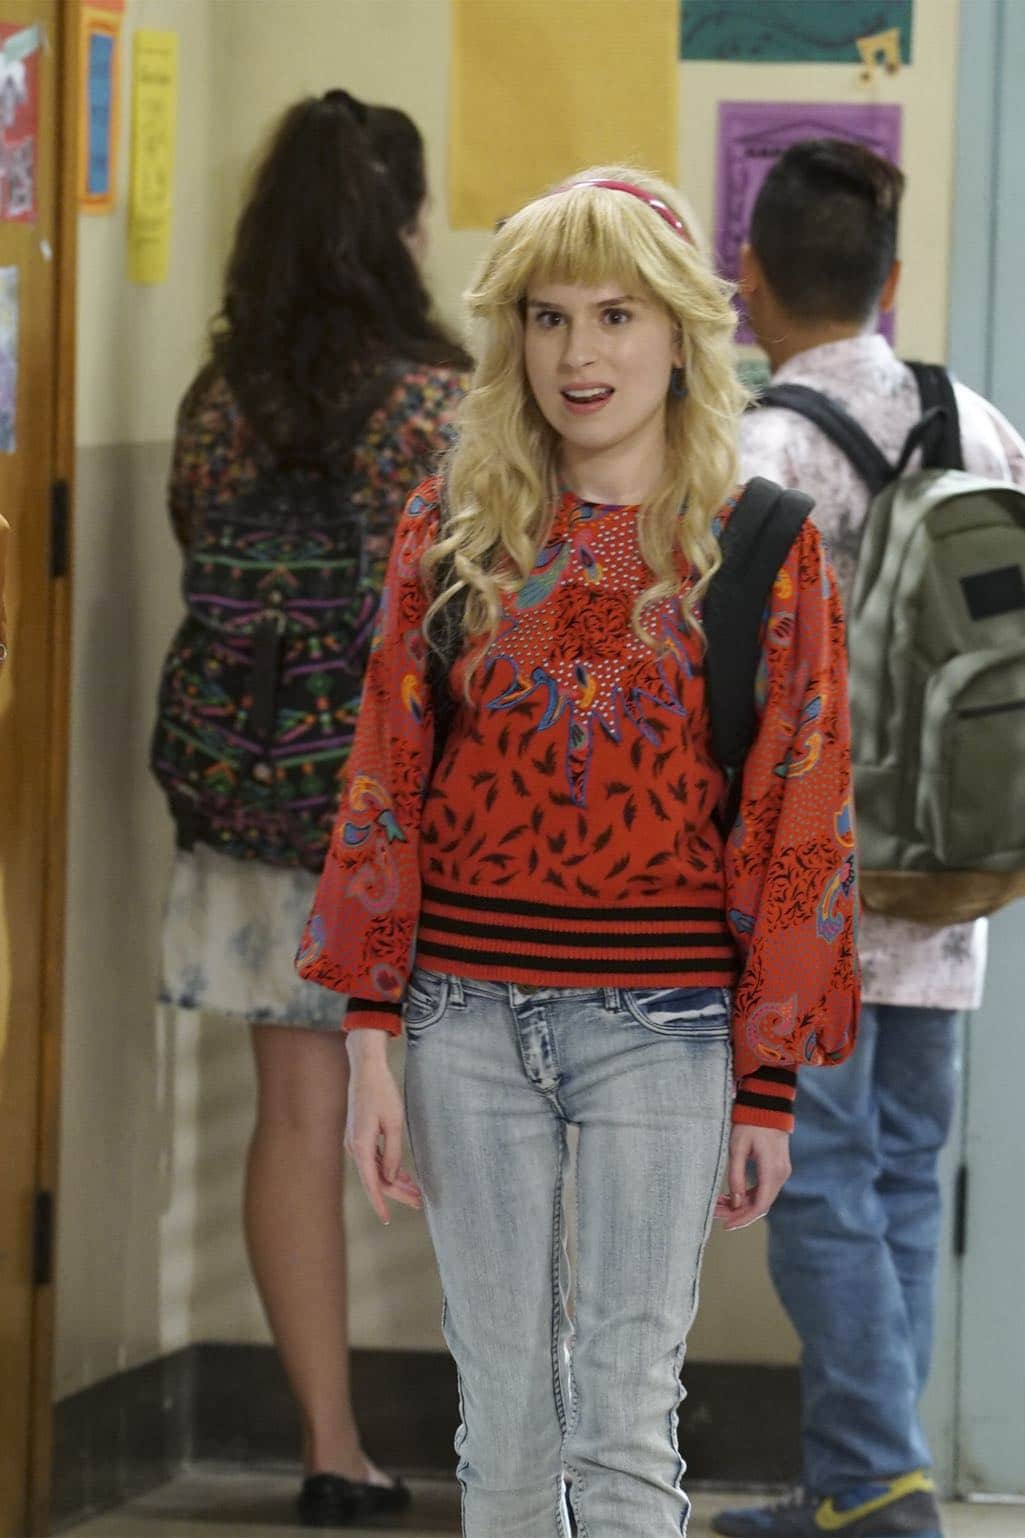 """THE GOLDBERGS - """"Stefan King"""" - Adam's love of Stephen King inspires him to try his hand at horror writing. After learning the monster in Adam's story is based off Beverly, she forces Adam to stay in on Halloween and rewrite it, hoping he depicts her as a better mother. Meanwhile, Erica is desperate to find a date to the costume dance and forces Barry go with her, on """"The Goldbergs,"""" WEDNESDAY, OCTOBER 26 (8:00-8:30 p.m. EDT), on the ABC Television Network. (ABC/Ron Tom) ALLIE GRANT"""